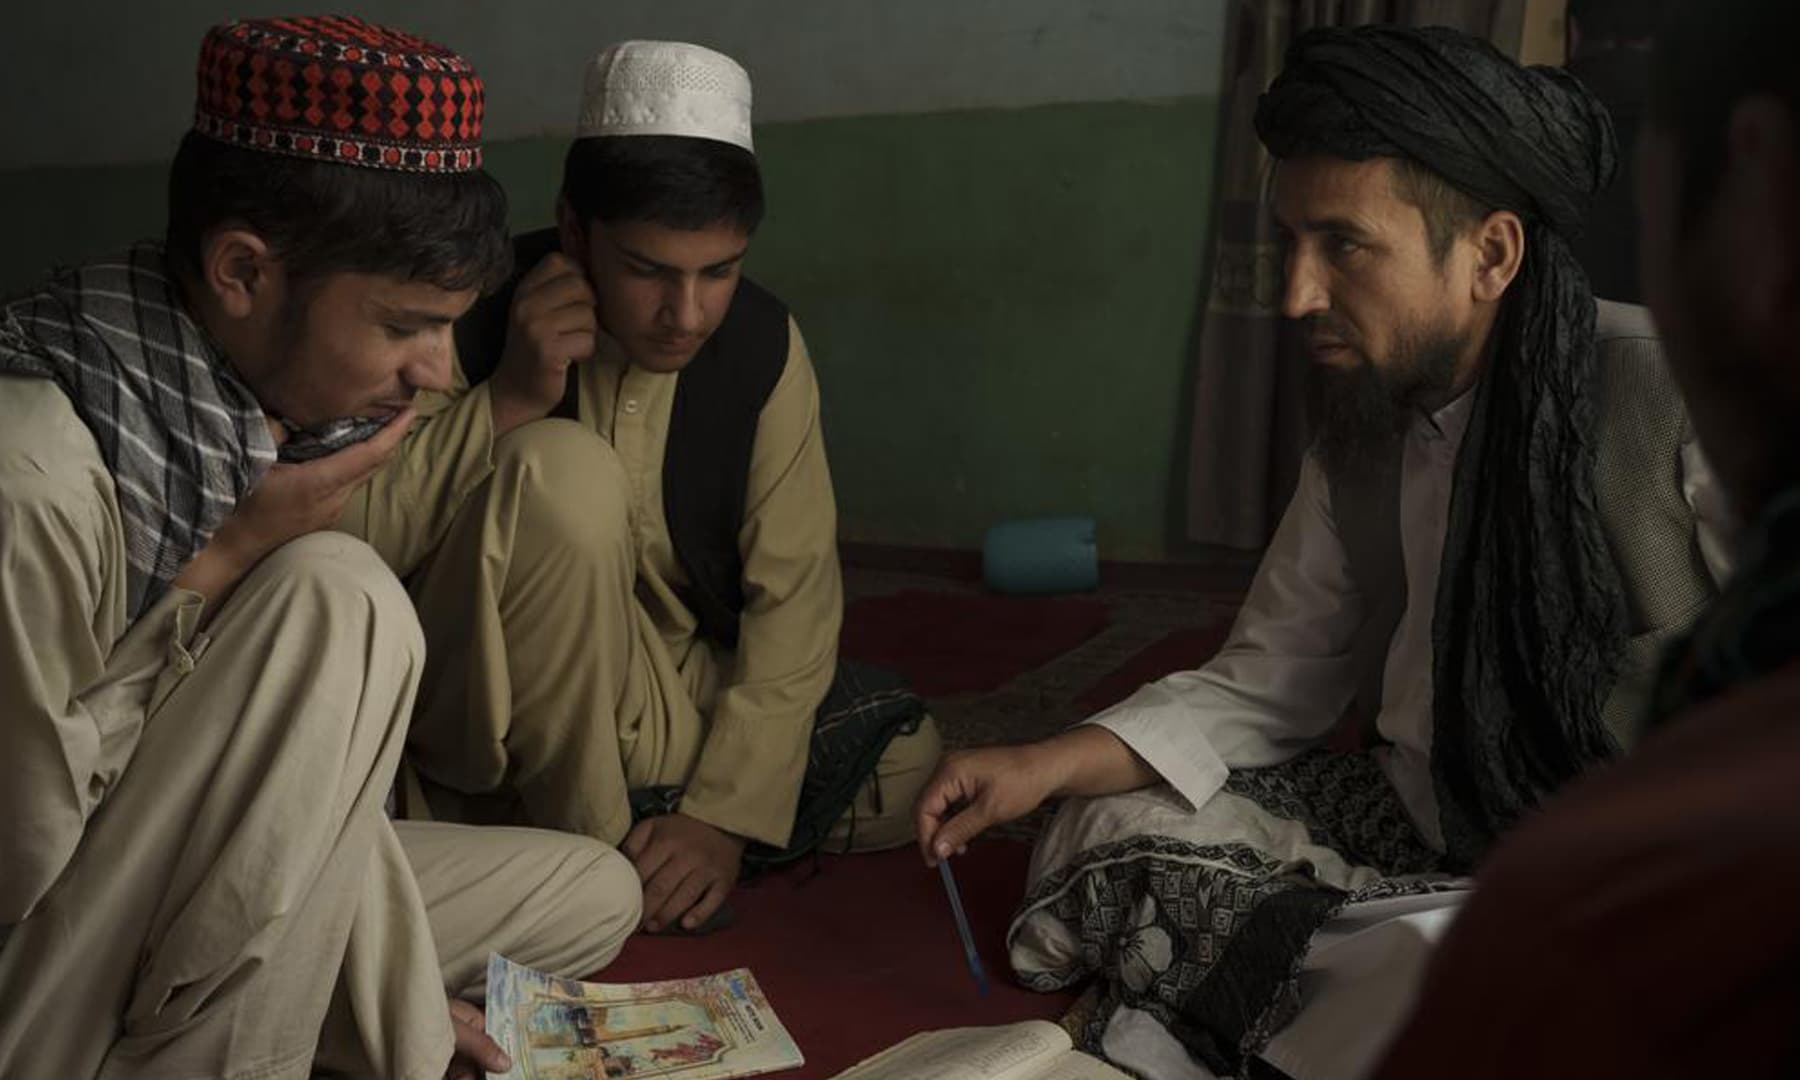 Afghan madrassa director Sebghatullah Samadi (right) talks to students during class at a madressah in Kabul, Afghanistan. — AP